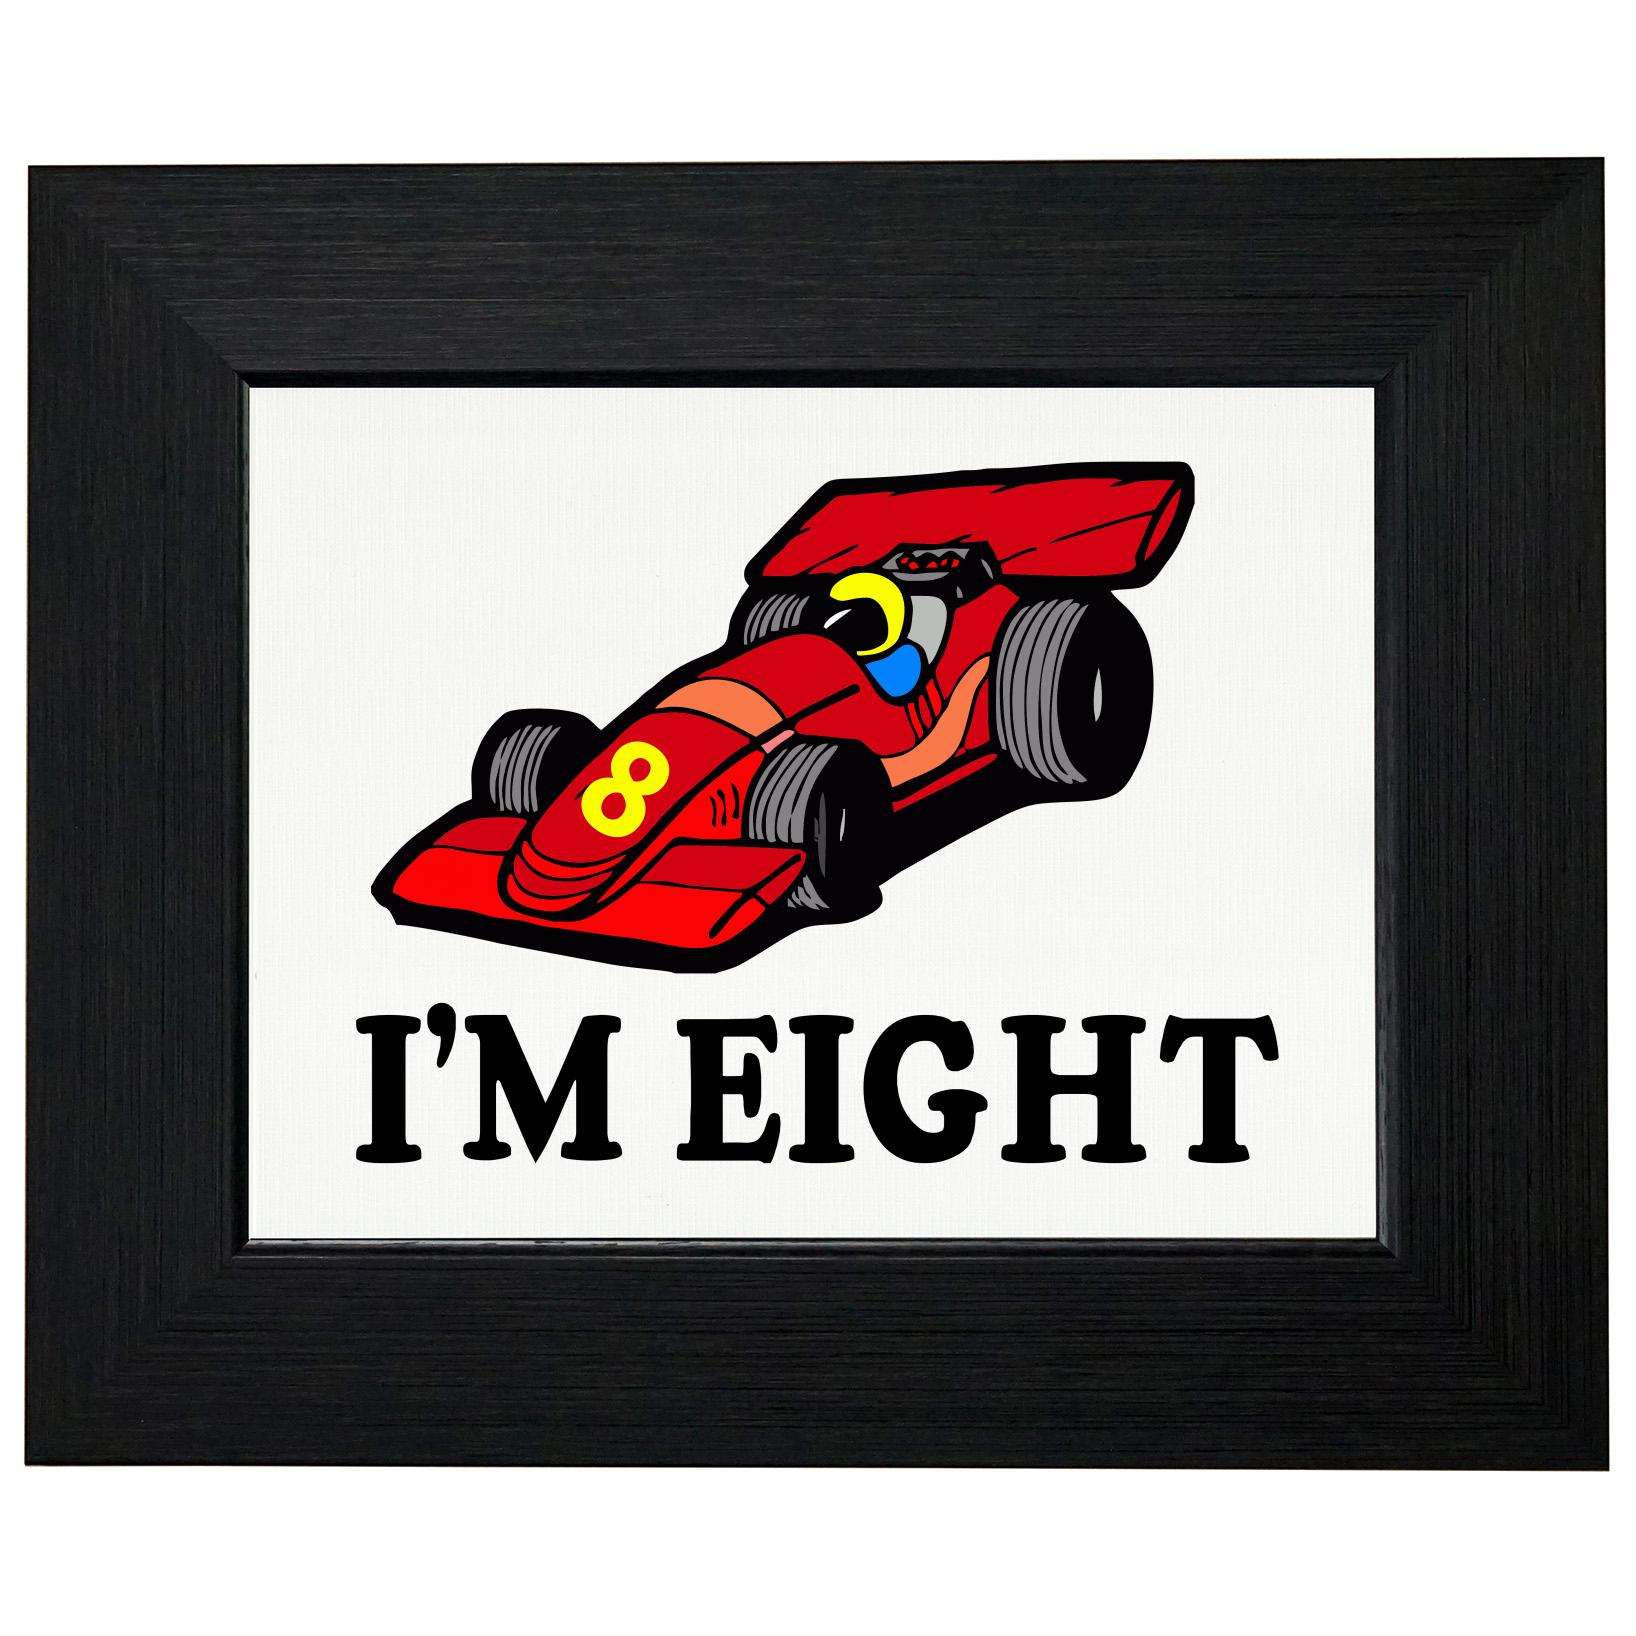 I'm 8 - Cartoon Race Car - Eighth Birthday - Gift Framed Print Poster Wall or Desk Mount Options